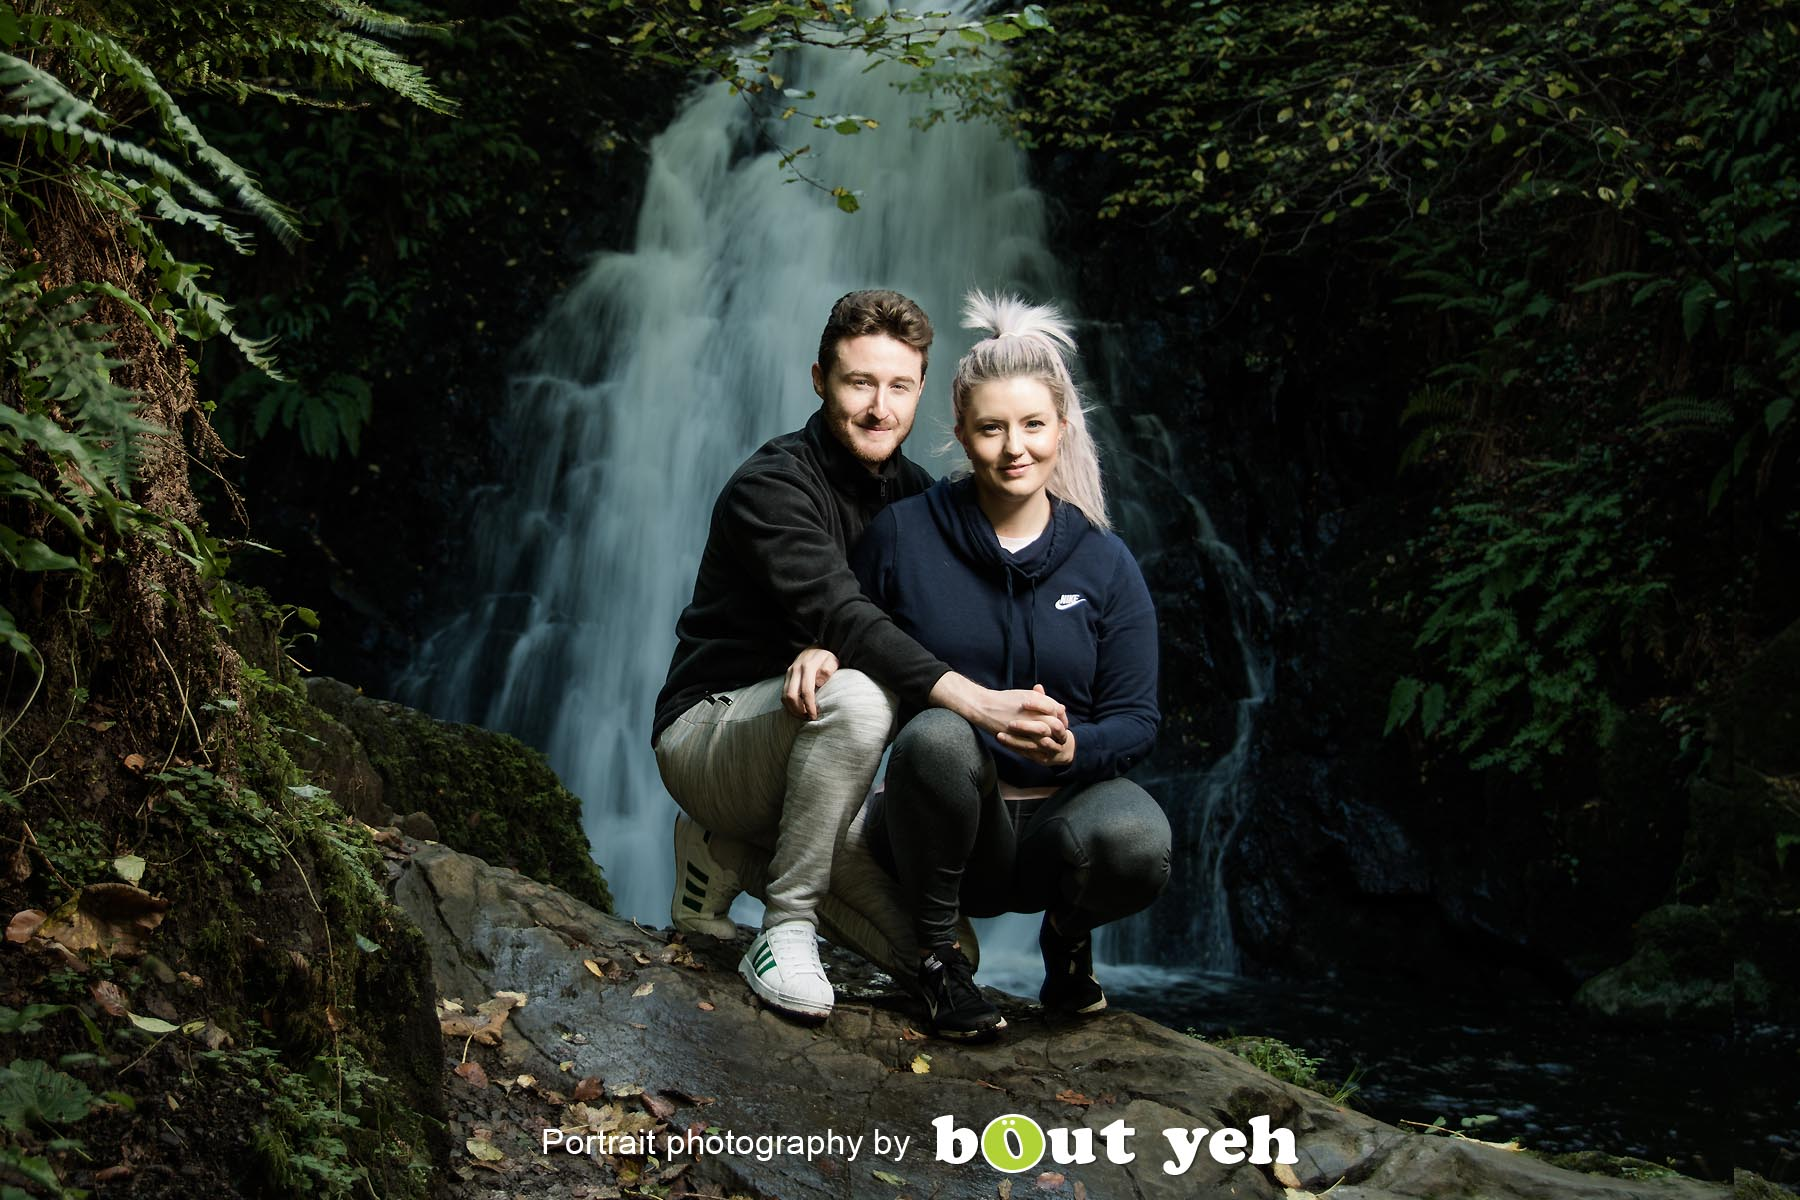 David and Joanna, at Gleno Waterfall, Northern Ireland - photo 9006.